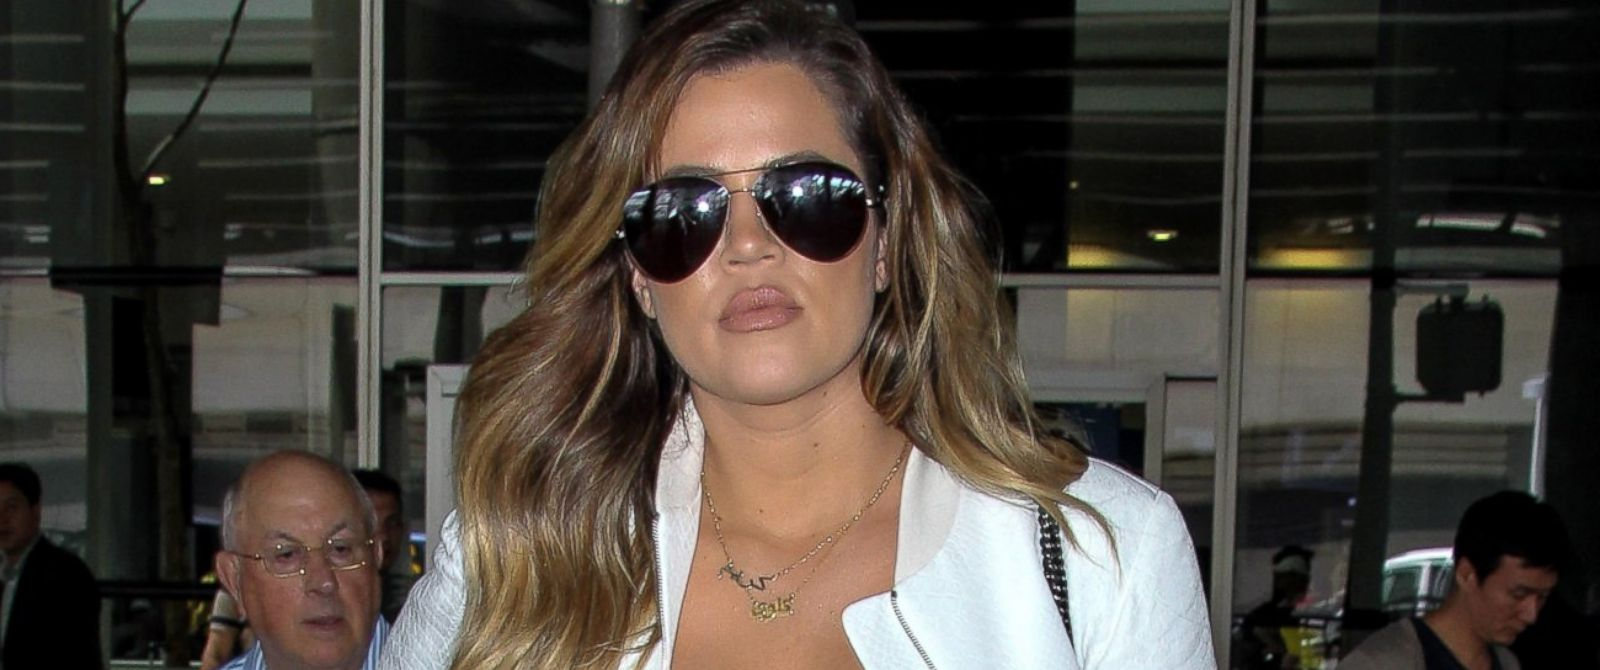 PHOTO: Khloe Kardashian arrives at JFK, May 26, 2014, in New York City.